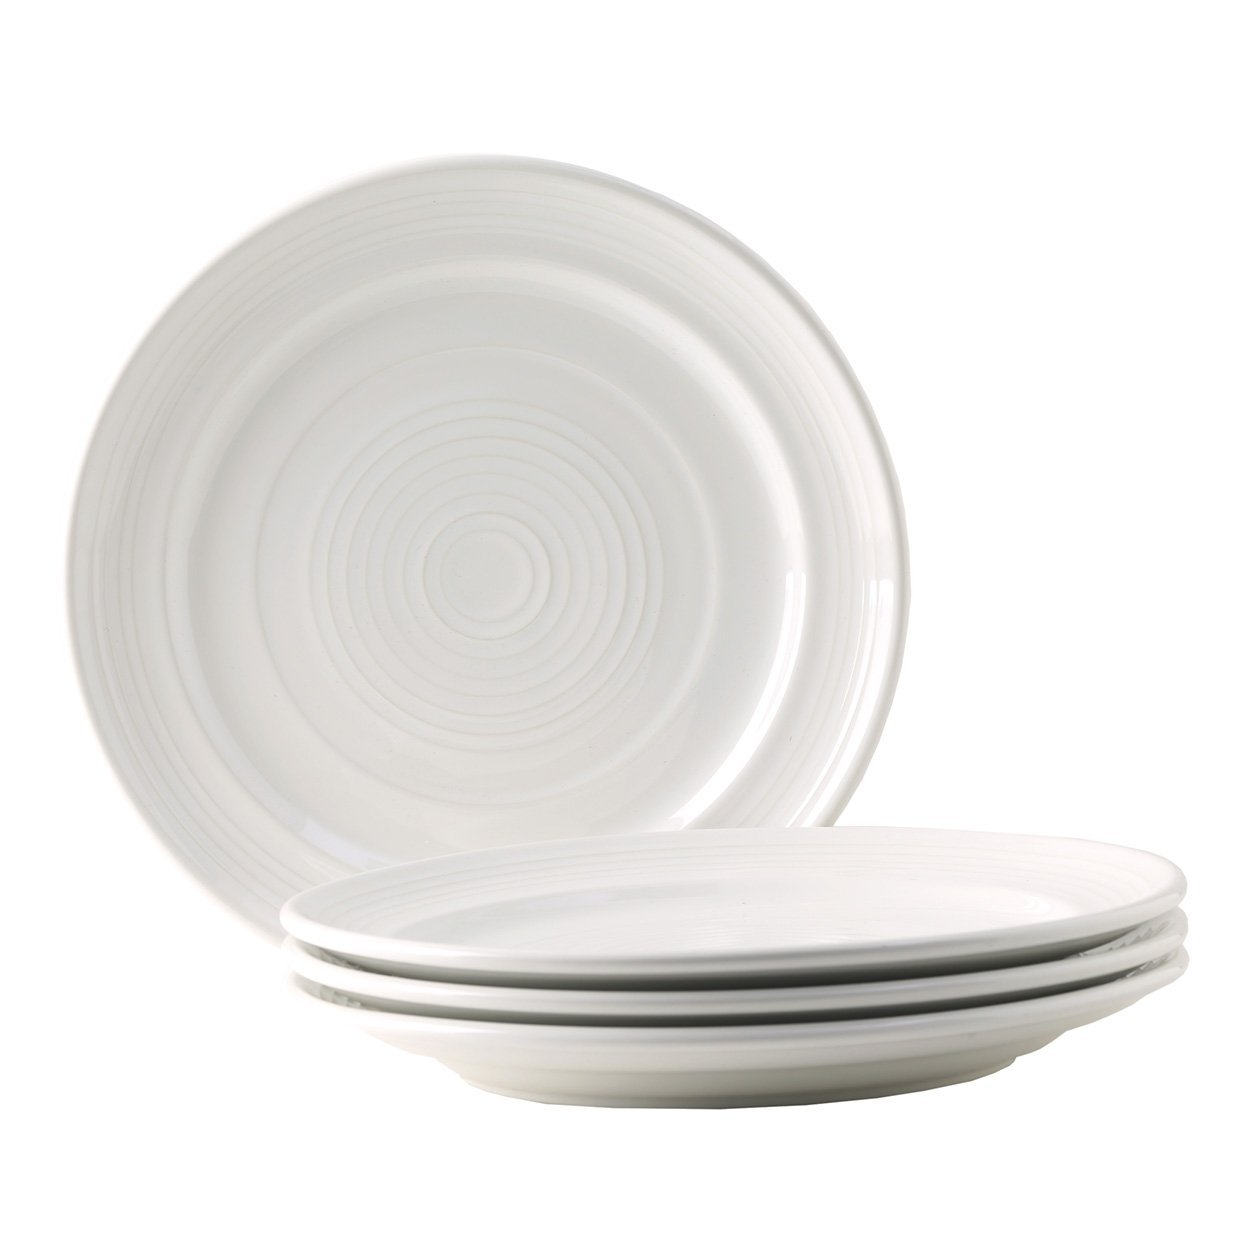 """Tuxton Home Concentrix Dinner Plate (Set of 4), 10 1/2"""", White; Heavy Duty; Chip Resistant; Lead and Cadmium Free; Freezer to Oven Safe up to 500F"""